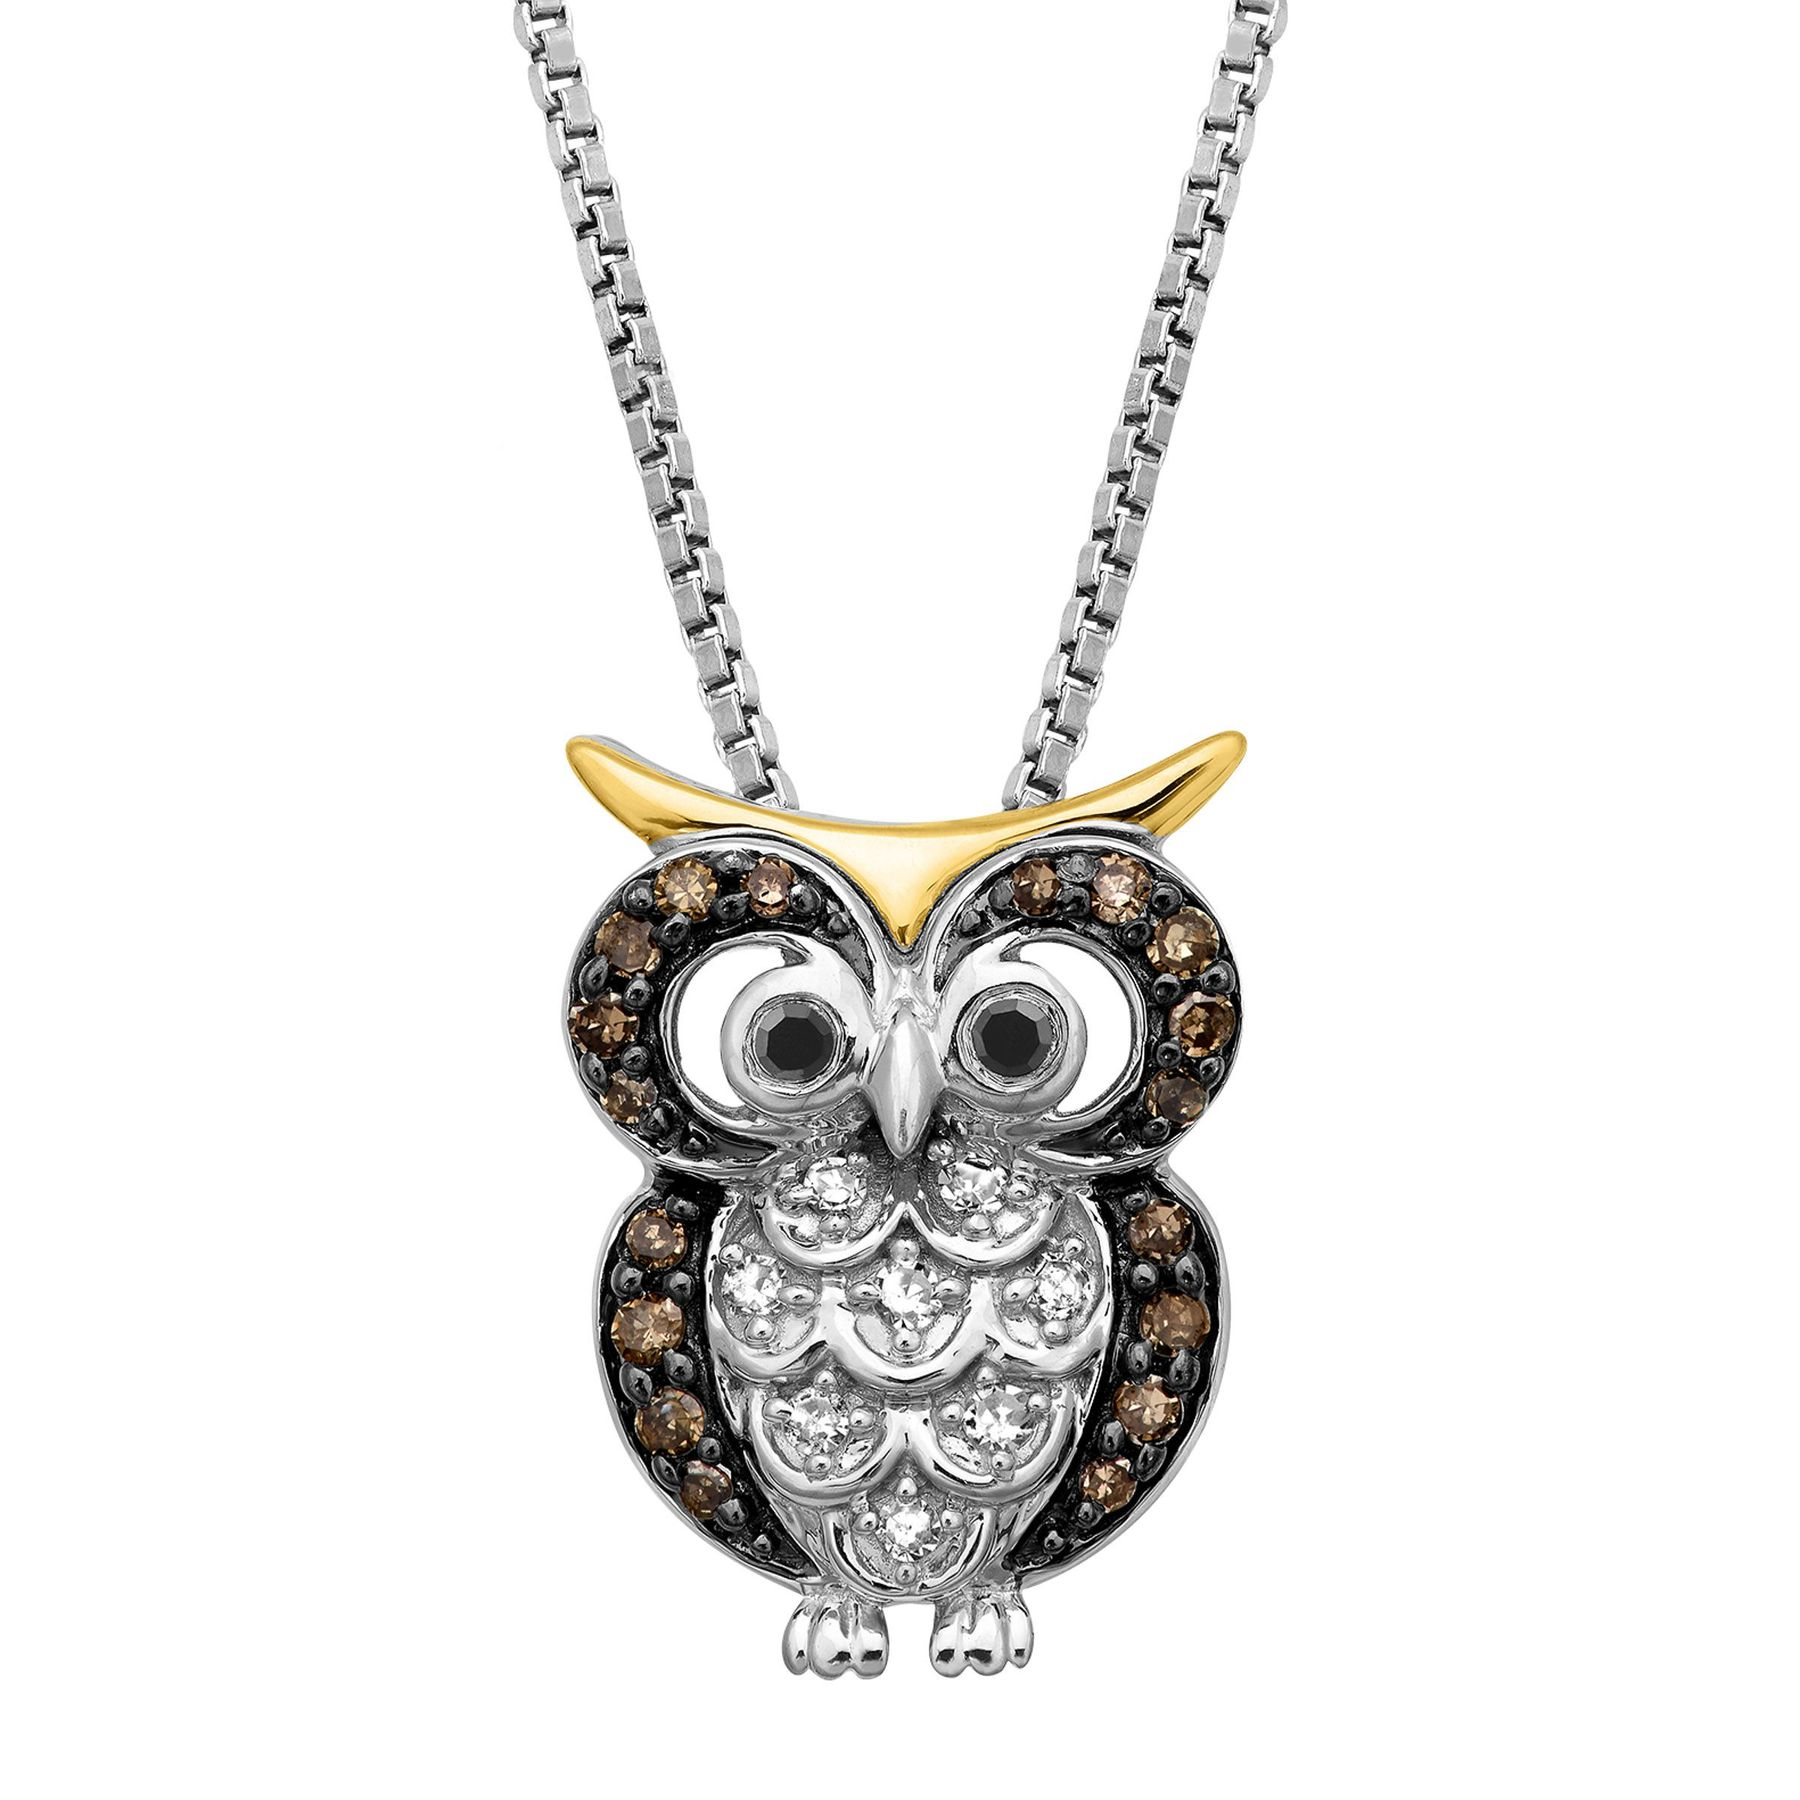 newest vintage owl chain pendant glass engel in necklace fashion product cabochon color jewelry silver liebe statement